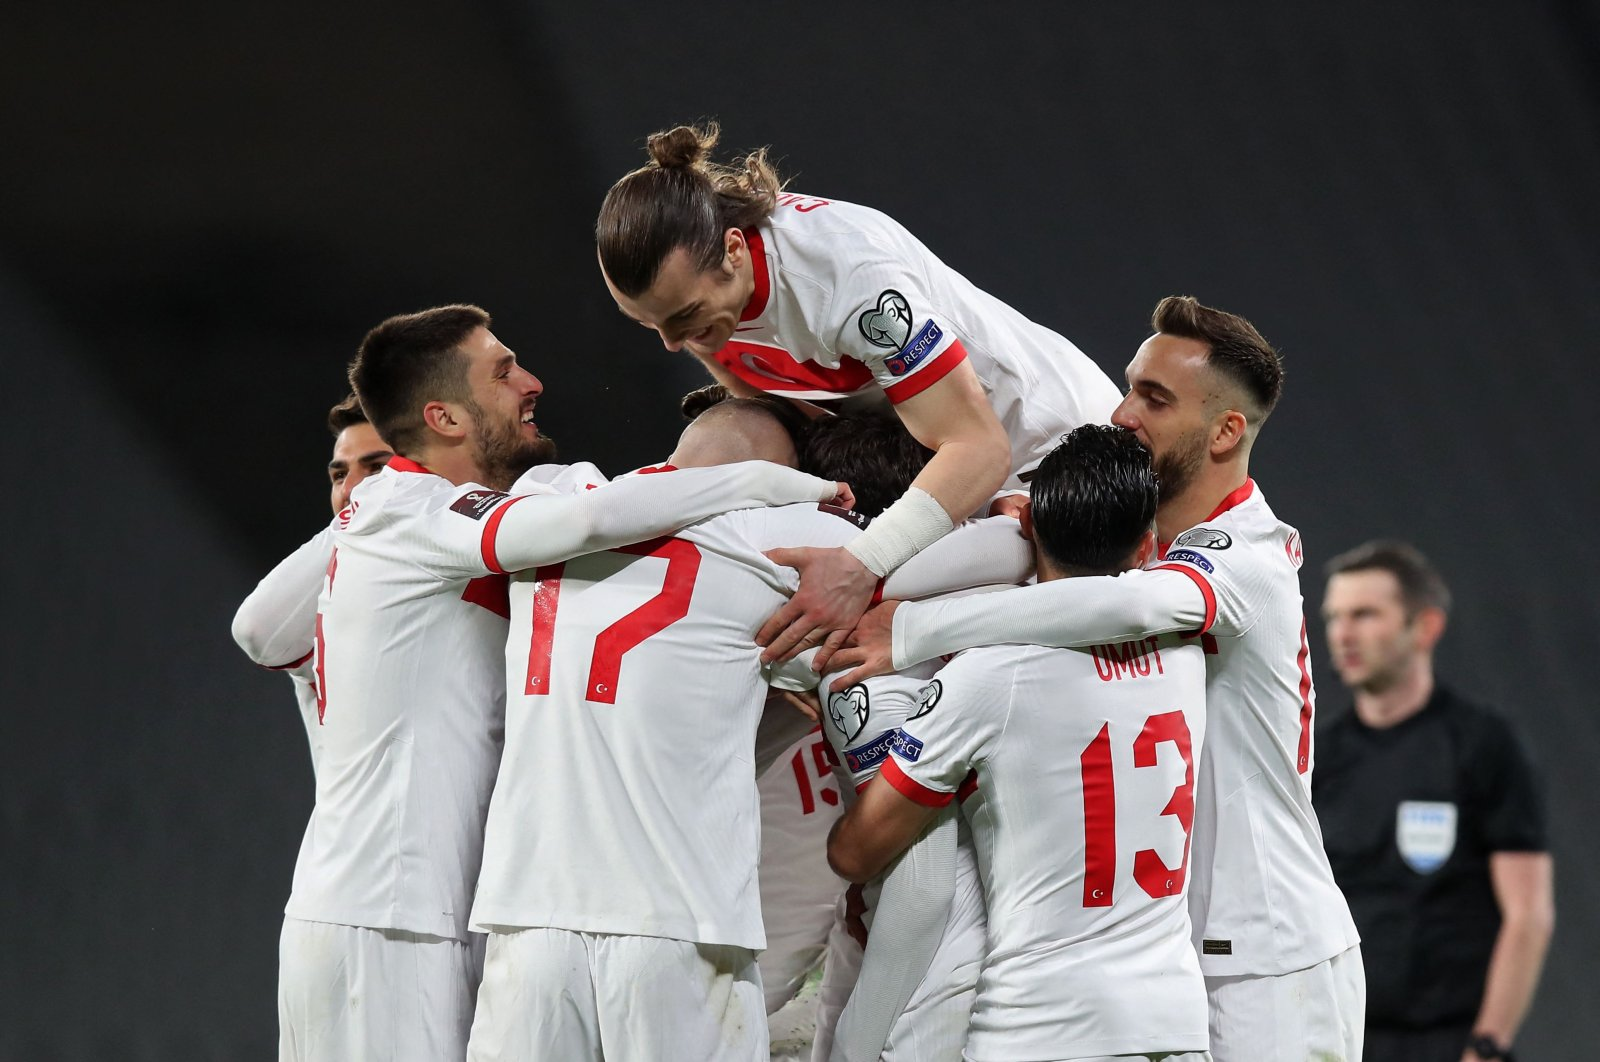 Turkey players celebrate after a goal in the FIFA World Cup Qatar 2022 qualification match against The Netherlands at the Atatürk Olympic Stadium, in Istanbul, Turkey, March 24, 2021. (AFP Photo)